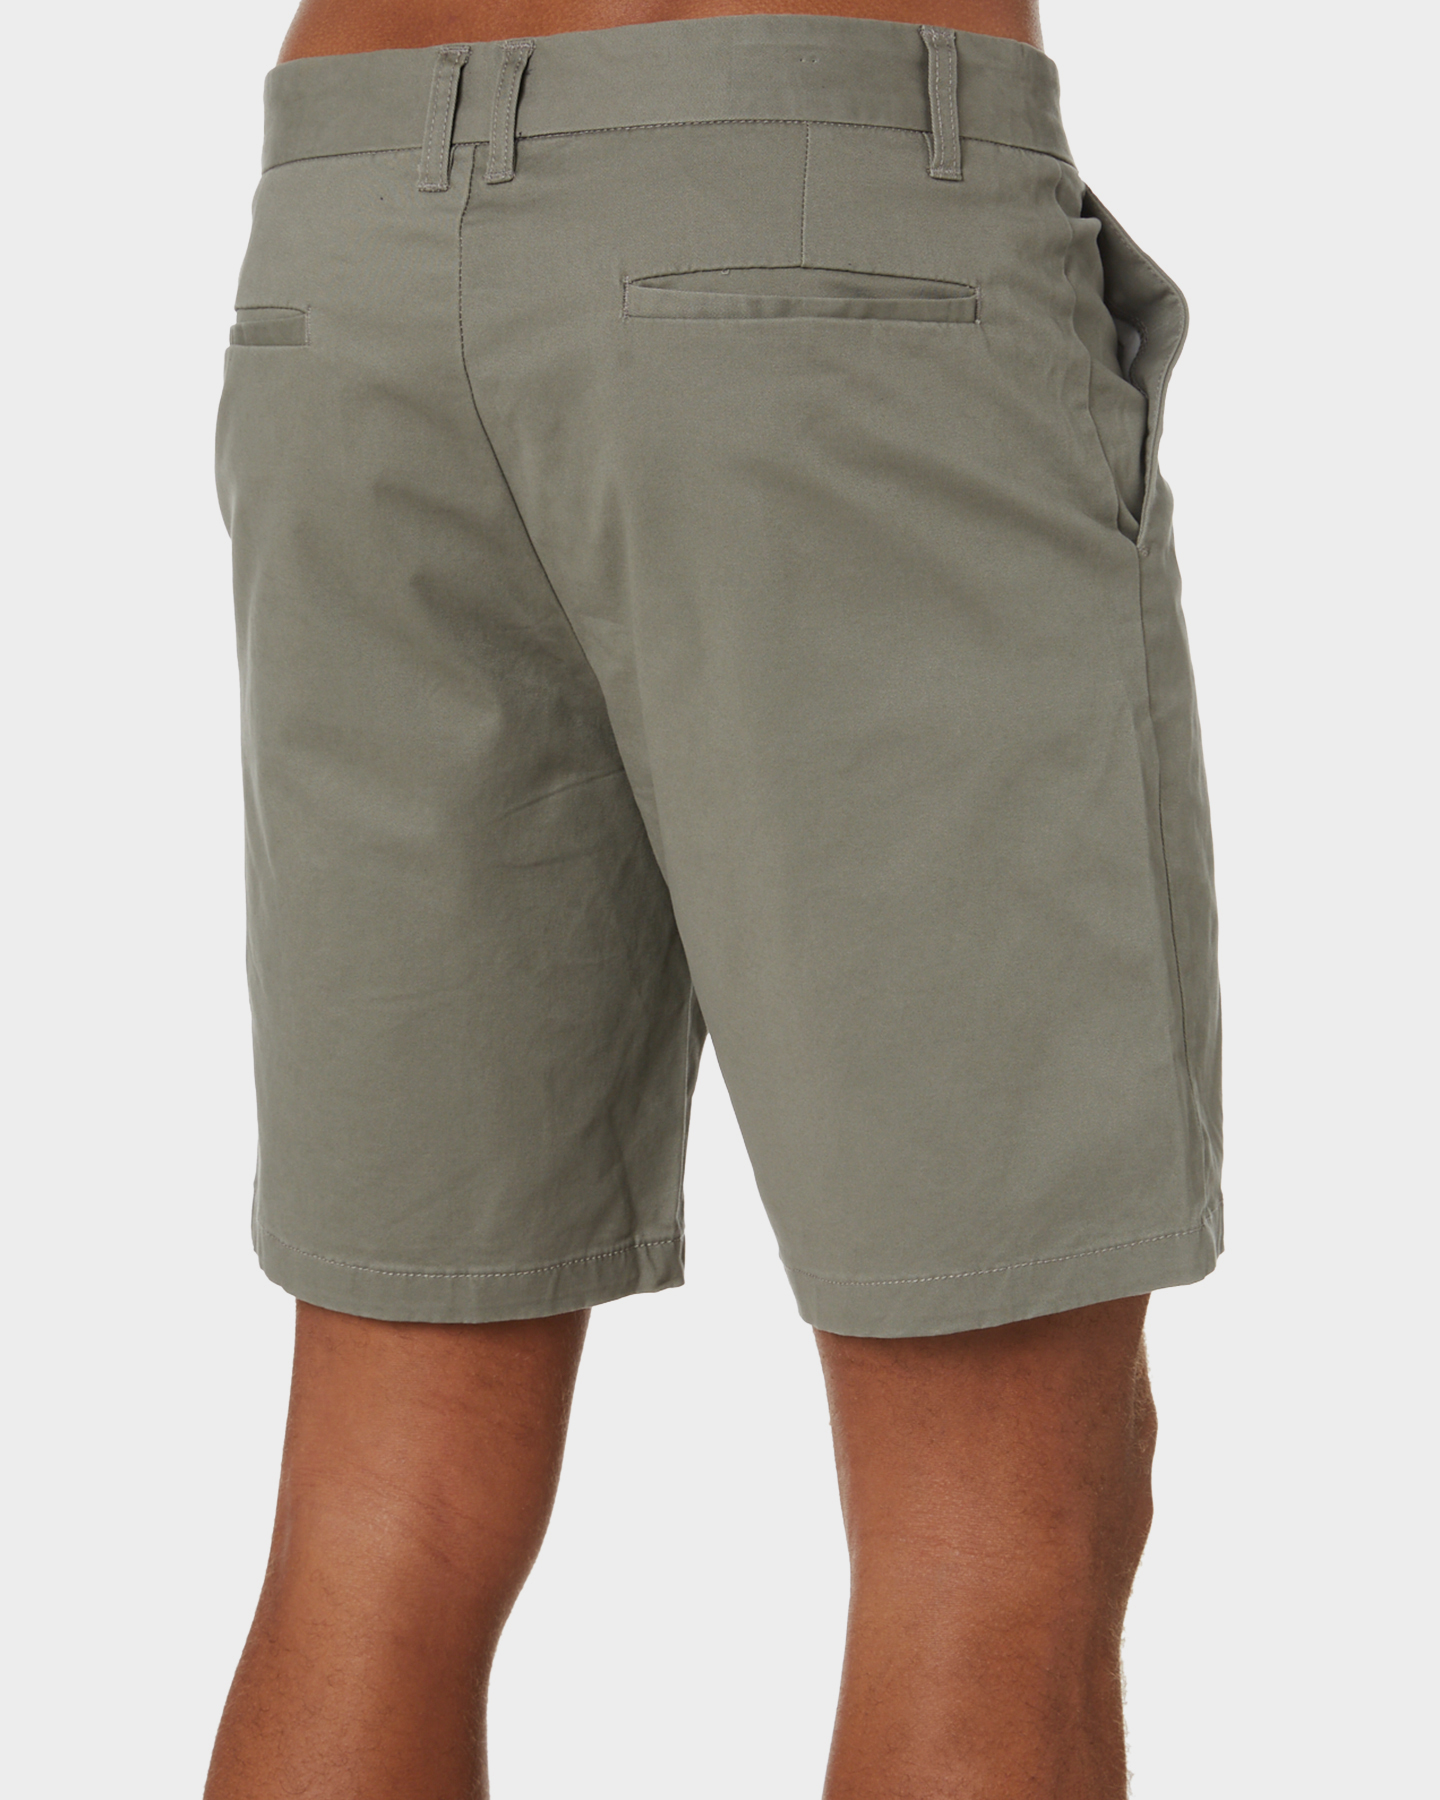 New-Swell-Men-039-s-Dandy-Mens-Chino-Short-Cotton-Fitted-Elastane-Blue thumbnail 19